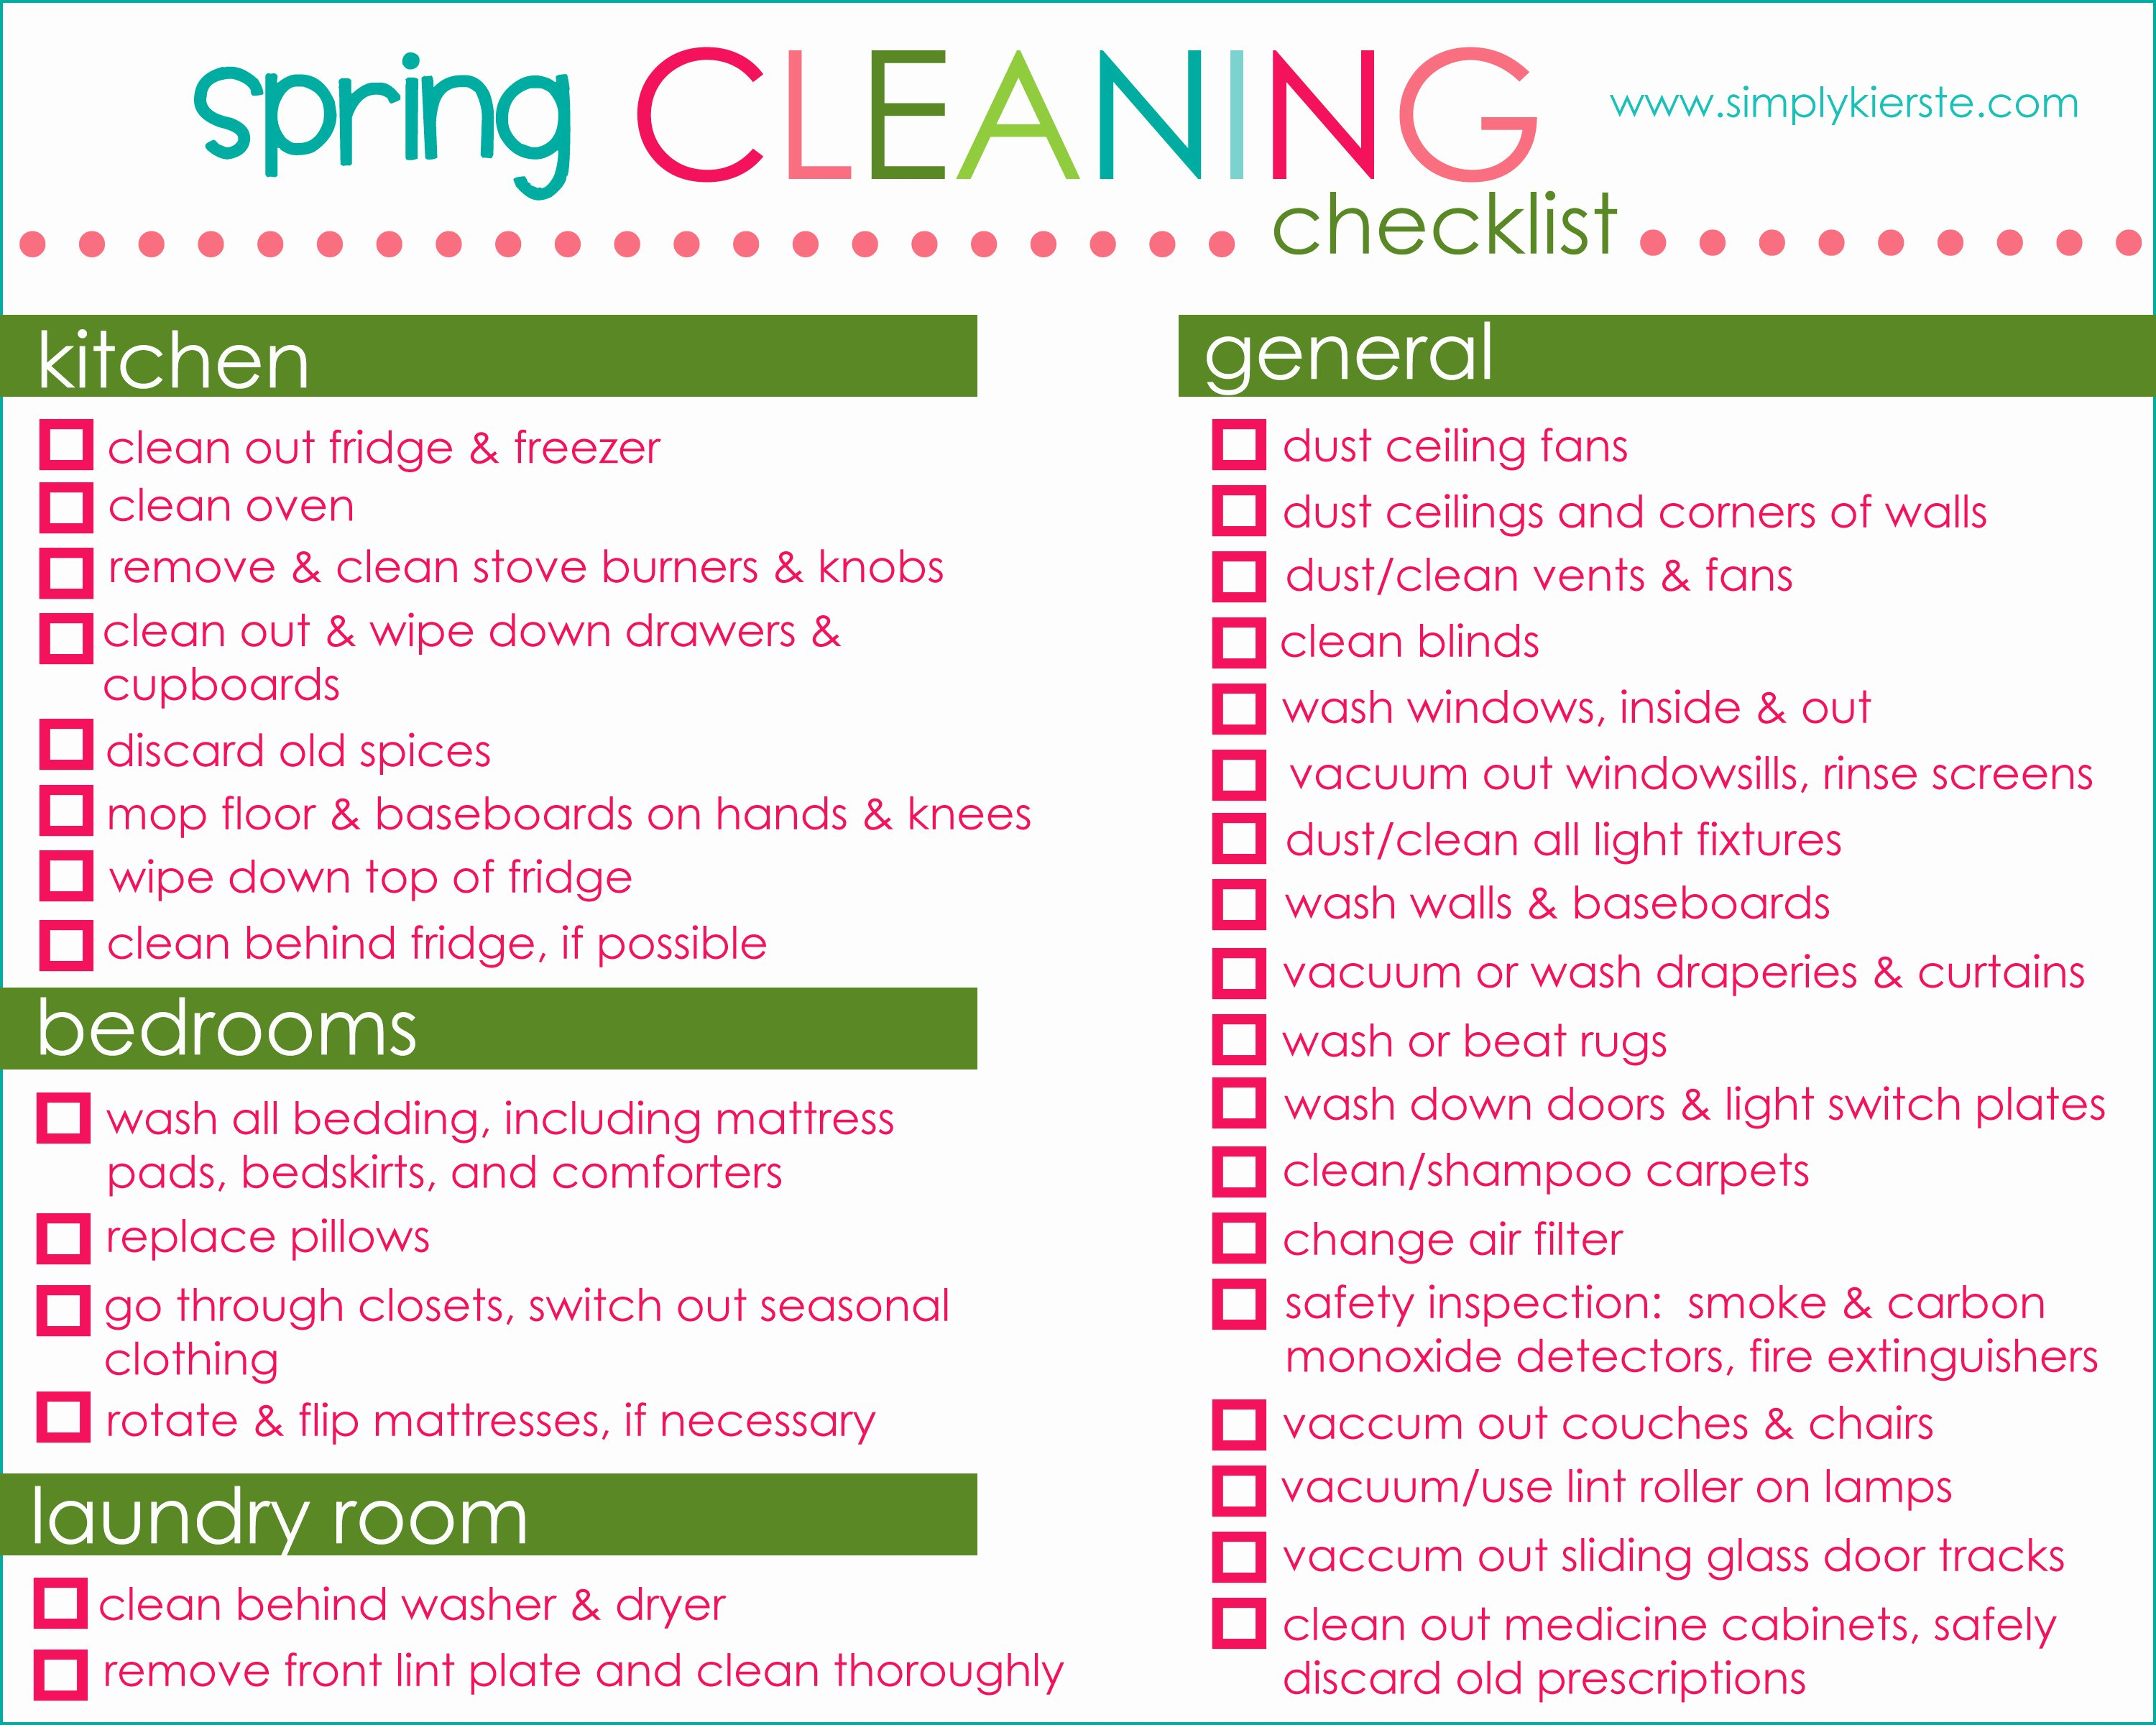 Spring Cleaning Checklist Tips & Free Printable